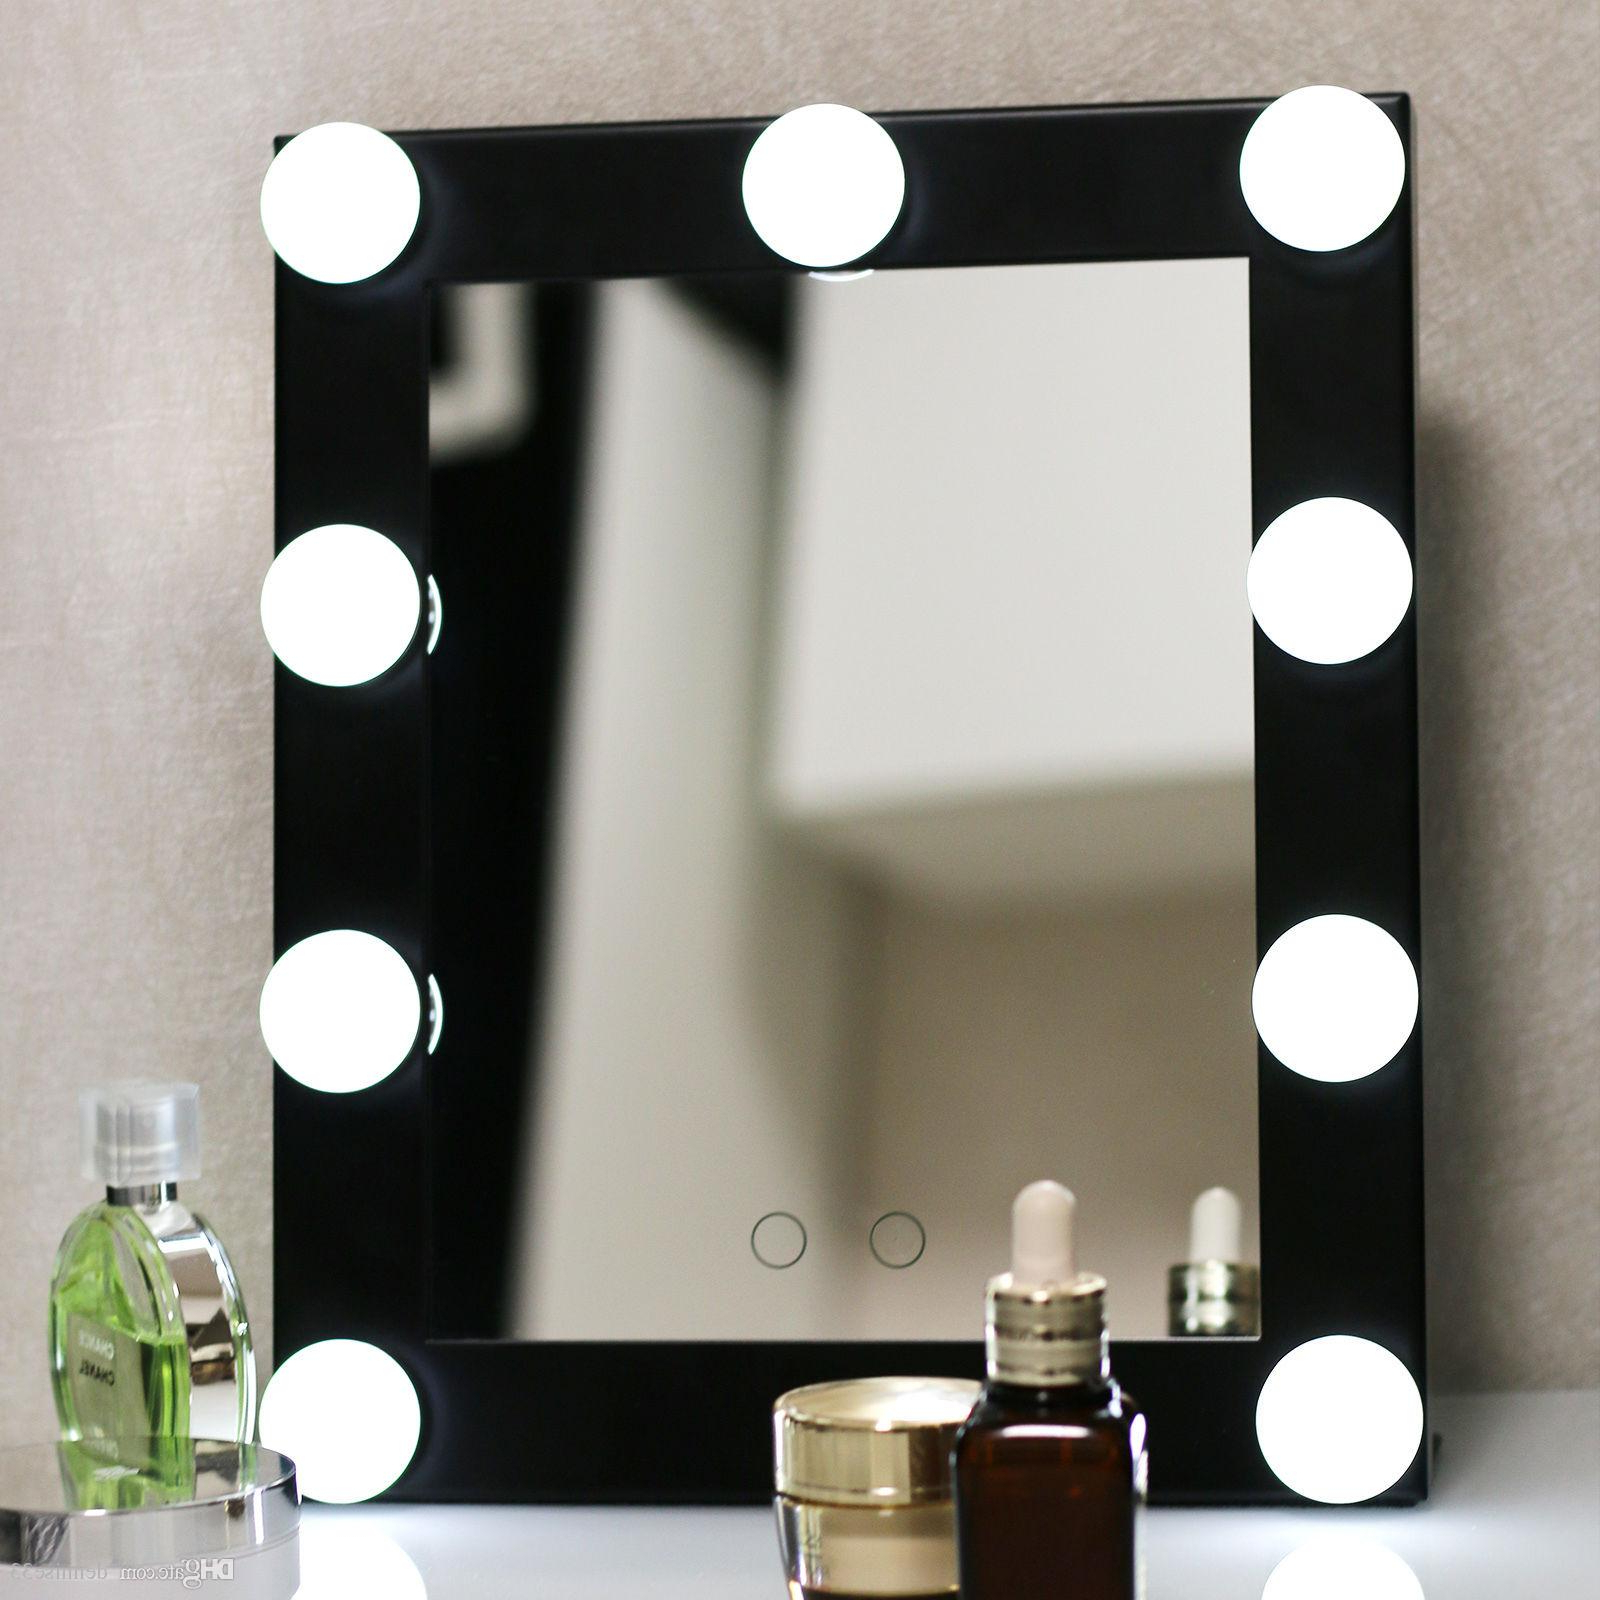 Well Known Girls Wall Mirrors Inside Free Shipping Hollywood Lighted Aluminum Table Desktop Wall Mounted Cosmetic Makeup Artist Salon Vanity Girl Mirror With Lights Bulbs Around (View 18 of 20)